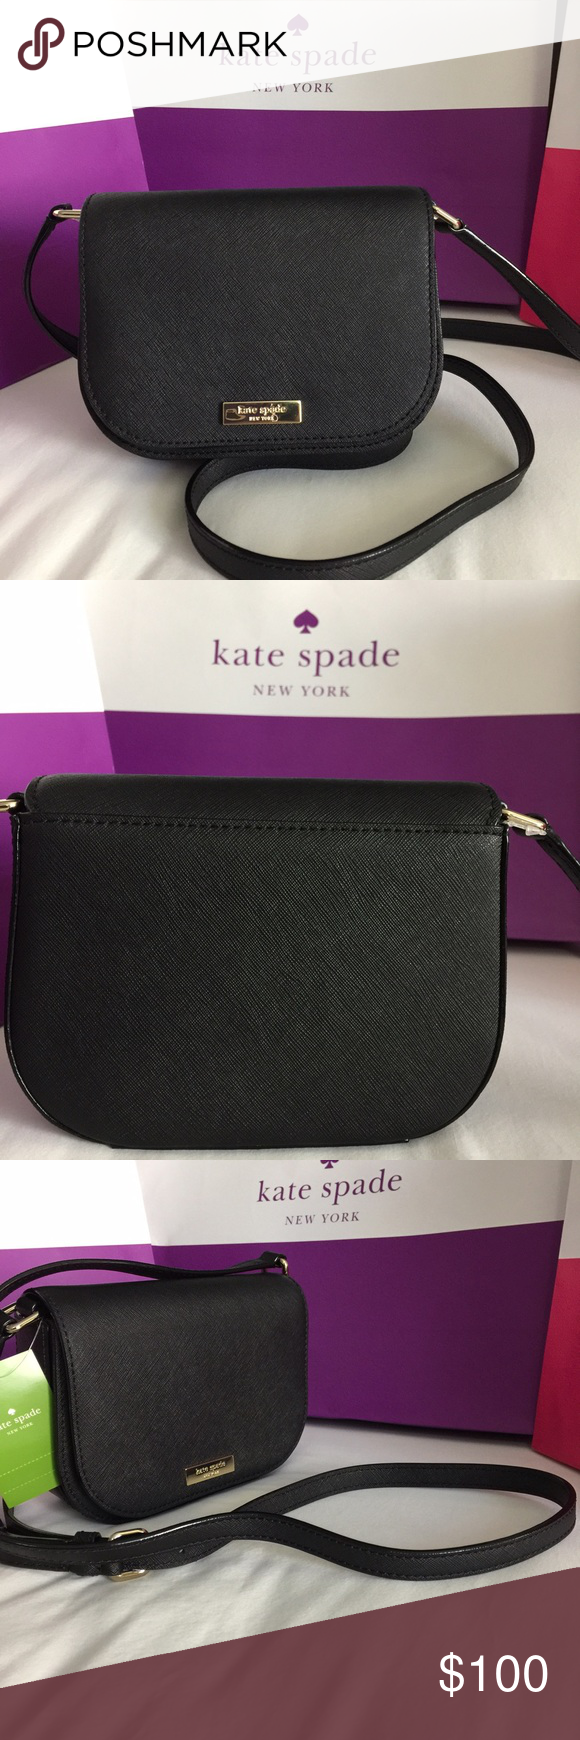 Small purse from Kate Spade. Brand new with tag! This small black leather purse is a perfect accessory for any look. It's size also makes it easy to carry and is never in the way! Kate Spade: Carson (in black), new with tags! kate spade Bags Mini Bags